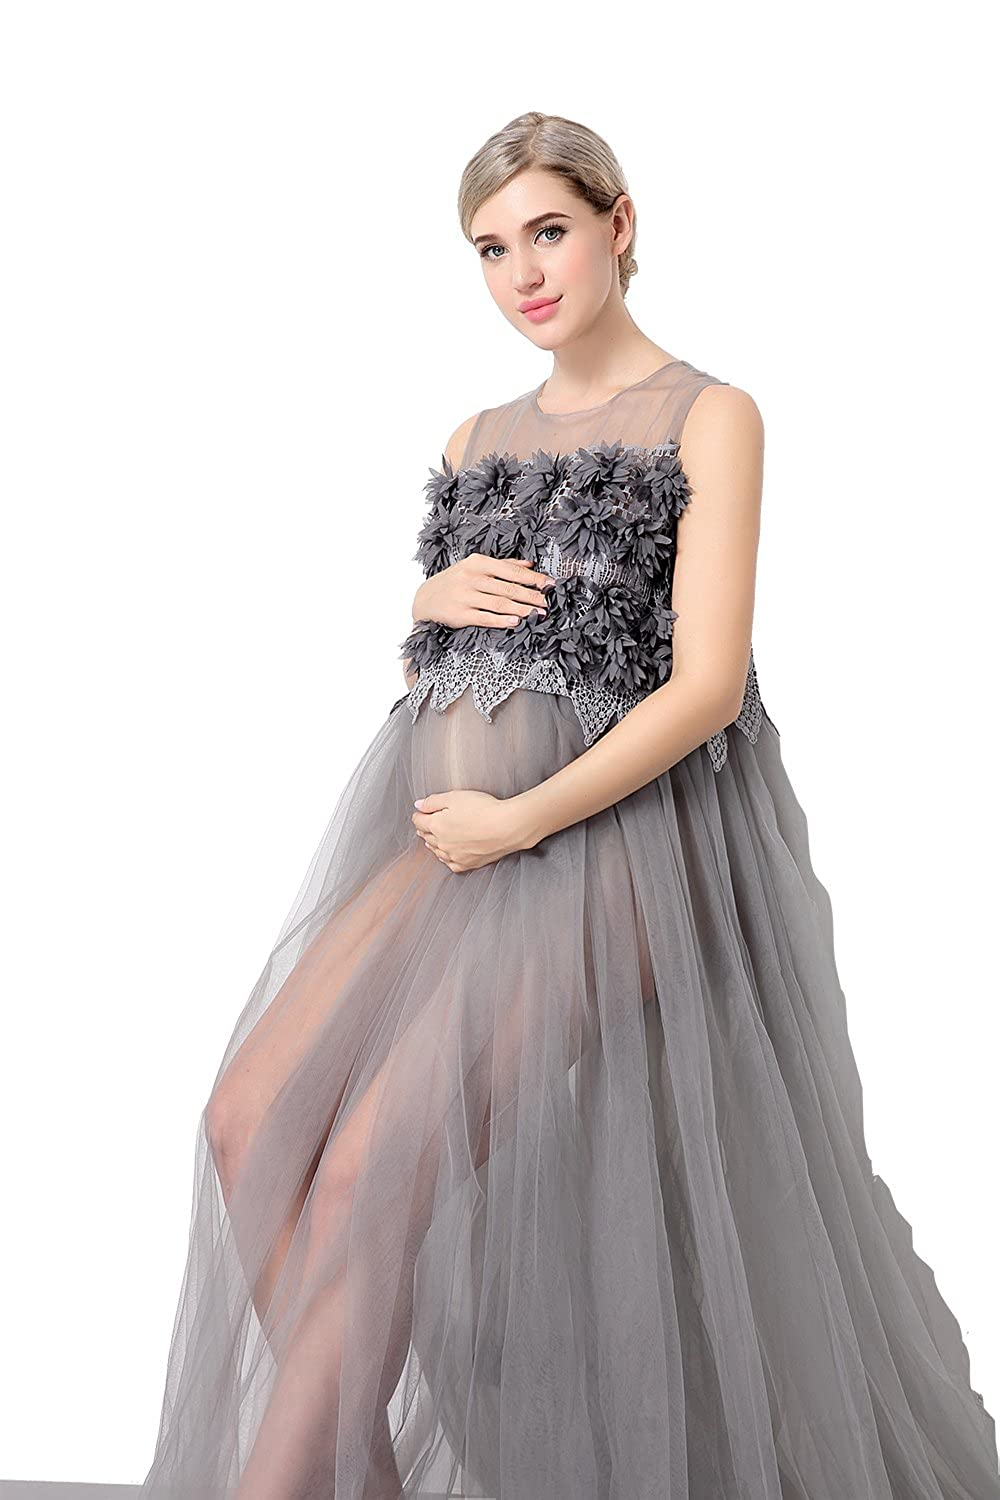 Women's See Through Mesh Sleeveless Gown Maxi Maternity Dress for Photo Shoot Gray Hopeverl